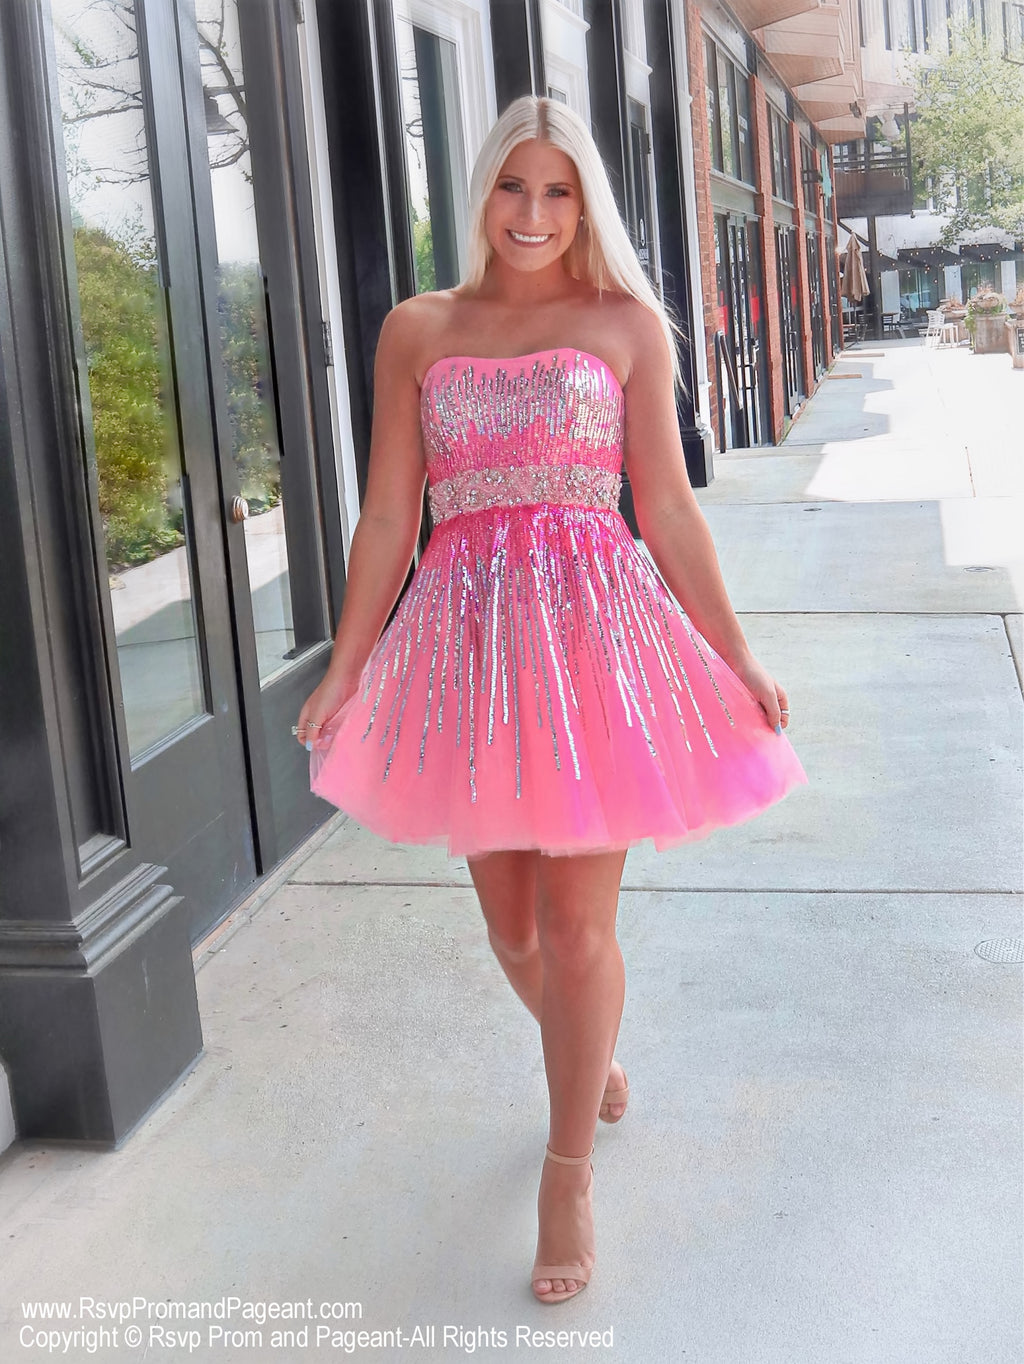 Girl walking in Gorgeous Strapless Pink Sequins Homecoming Dress at Rsvp Prom and Pageant, best prom dress store in Atlanta, Georgia